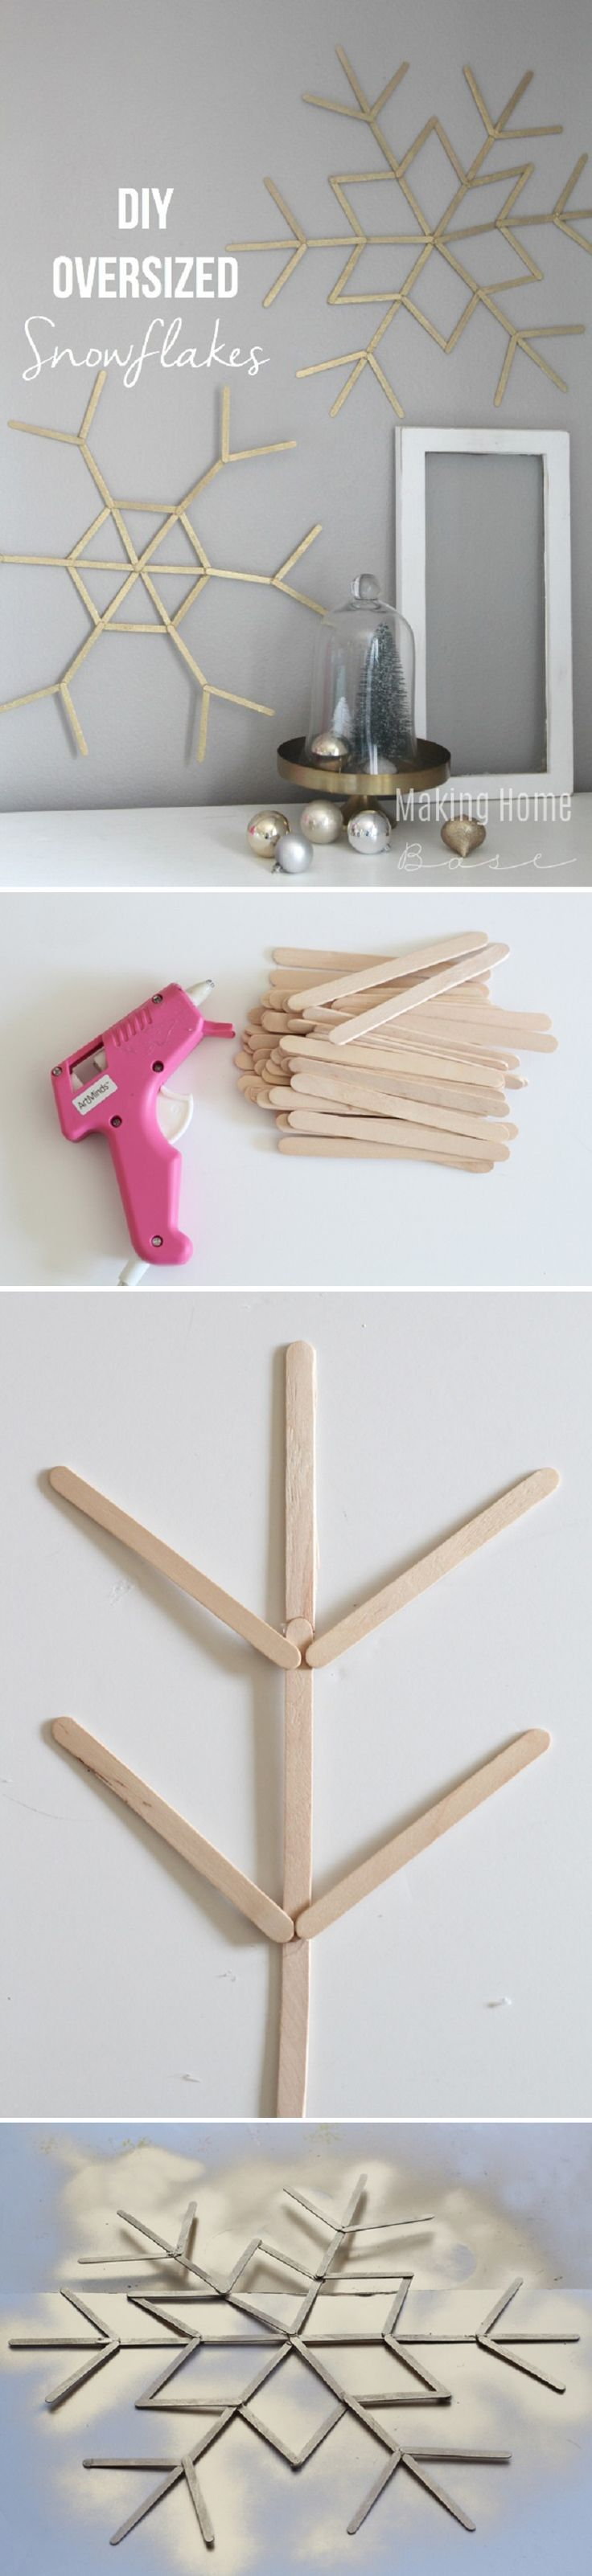 DIY Oversized Snowflakes from Popsicle Sticks: